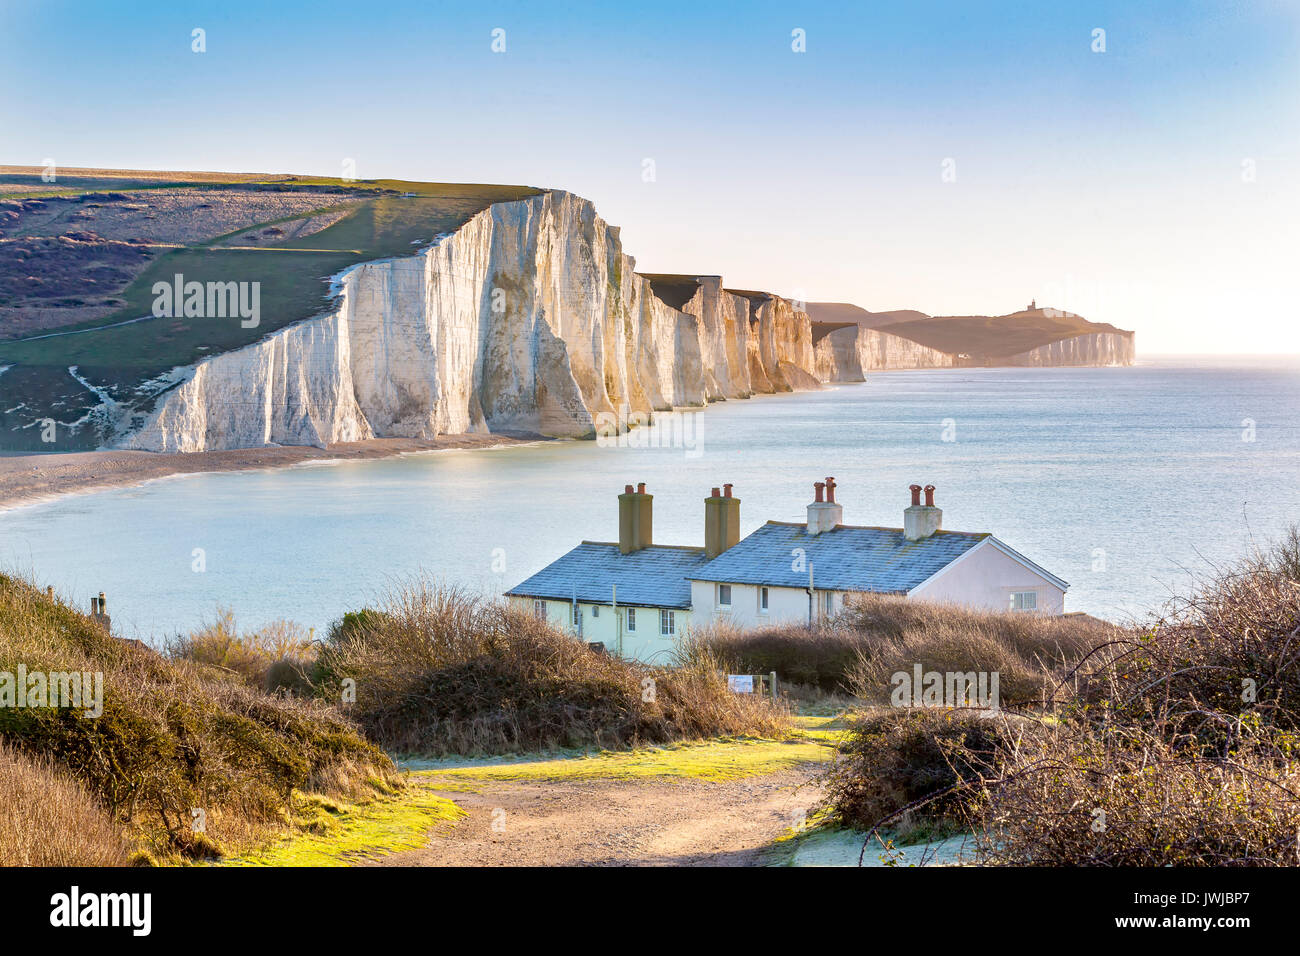 The Coast Guard Cottages & Seven Sisters Chalk Cliffs just outside Eastbourne, Sussex, England, UK. - Stock Image